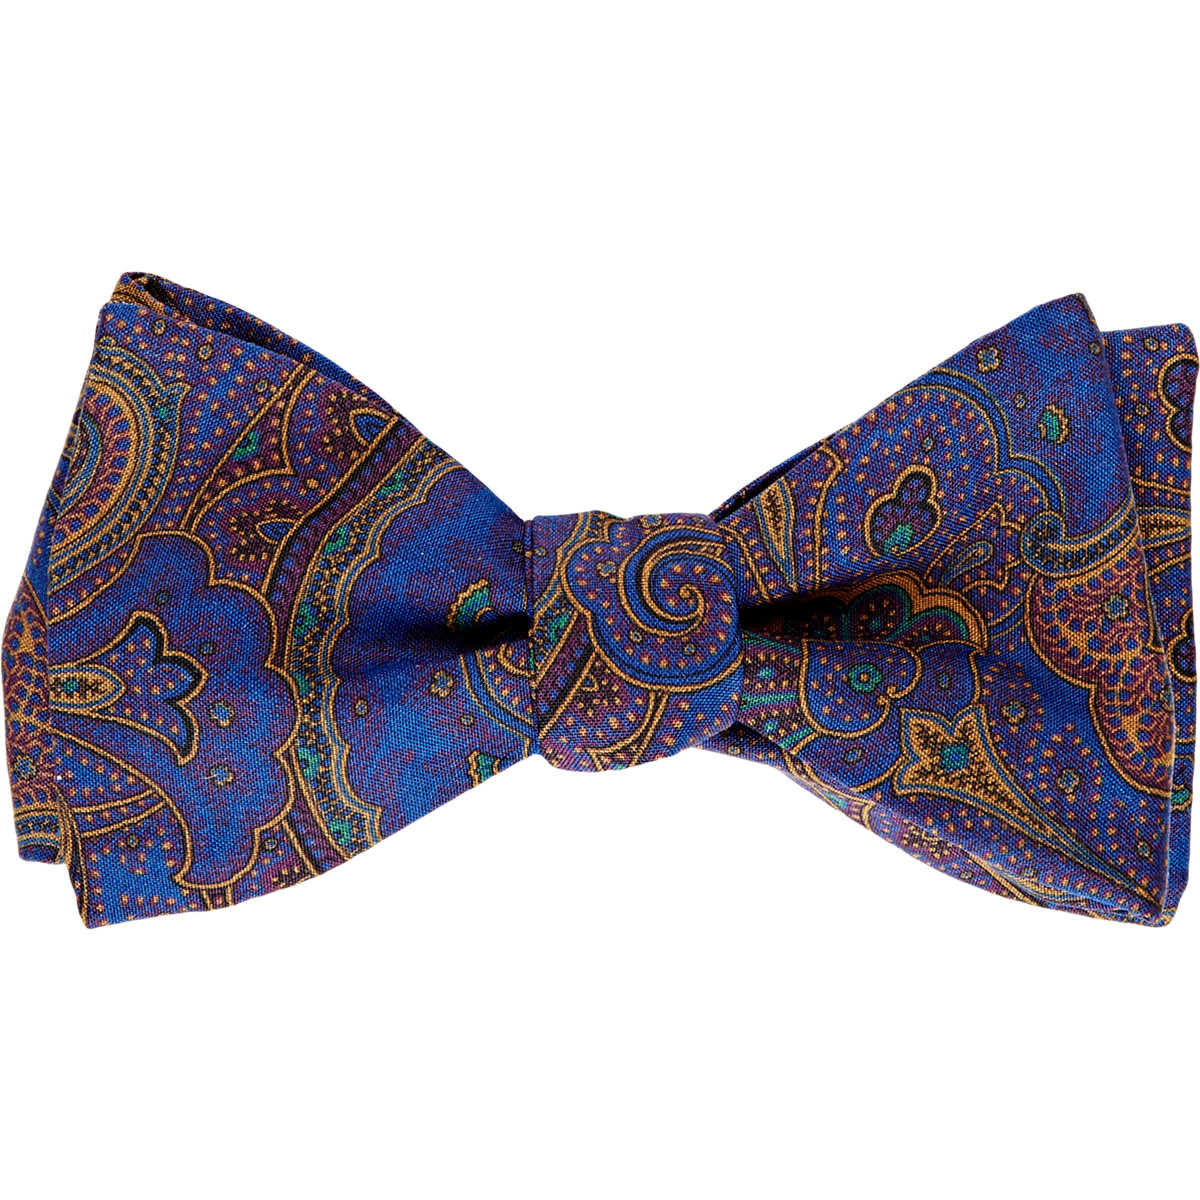 Shop our site for the biggest selection of ties and the highest quality out there. Whether you're looking for a cotton or silk style, we have you covered with our selection of paisley bow ties. Free shipping and returns on orders of $20 or more. Buy today and find your style.